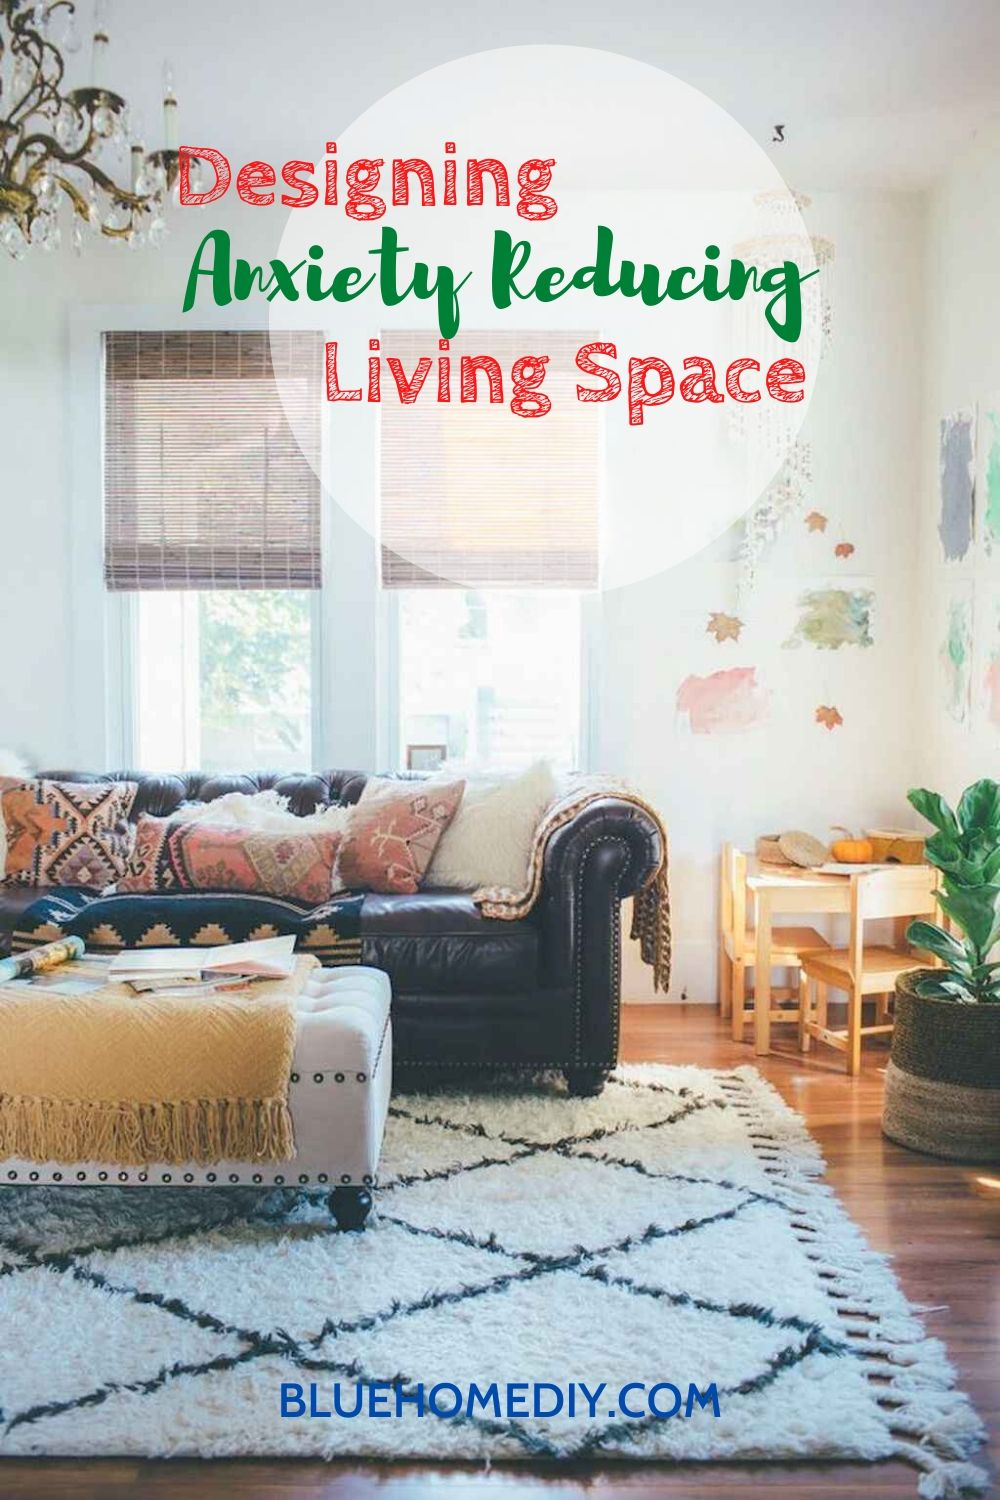 Designing an Anxiety Reducing Living Space